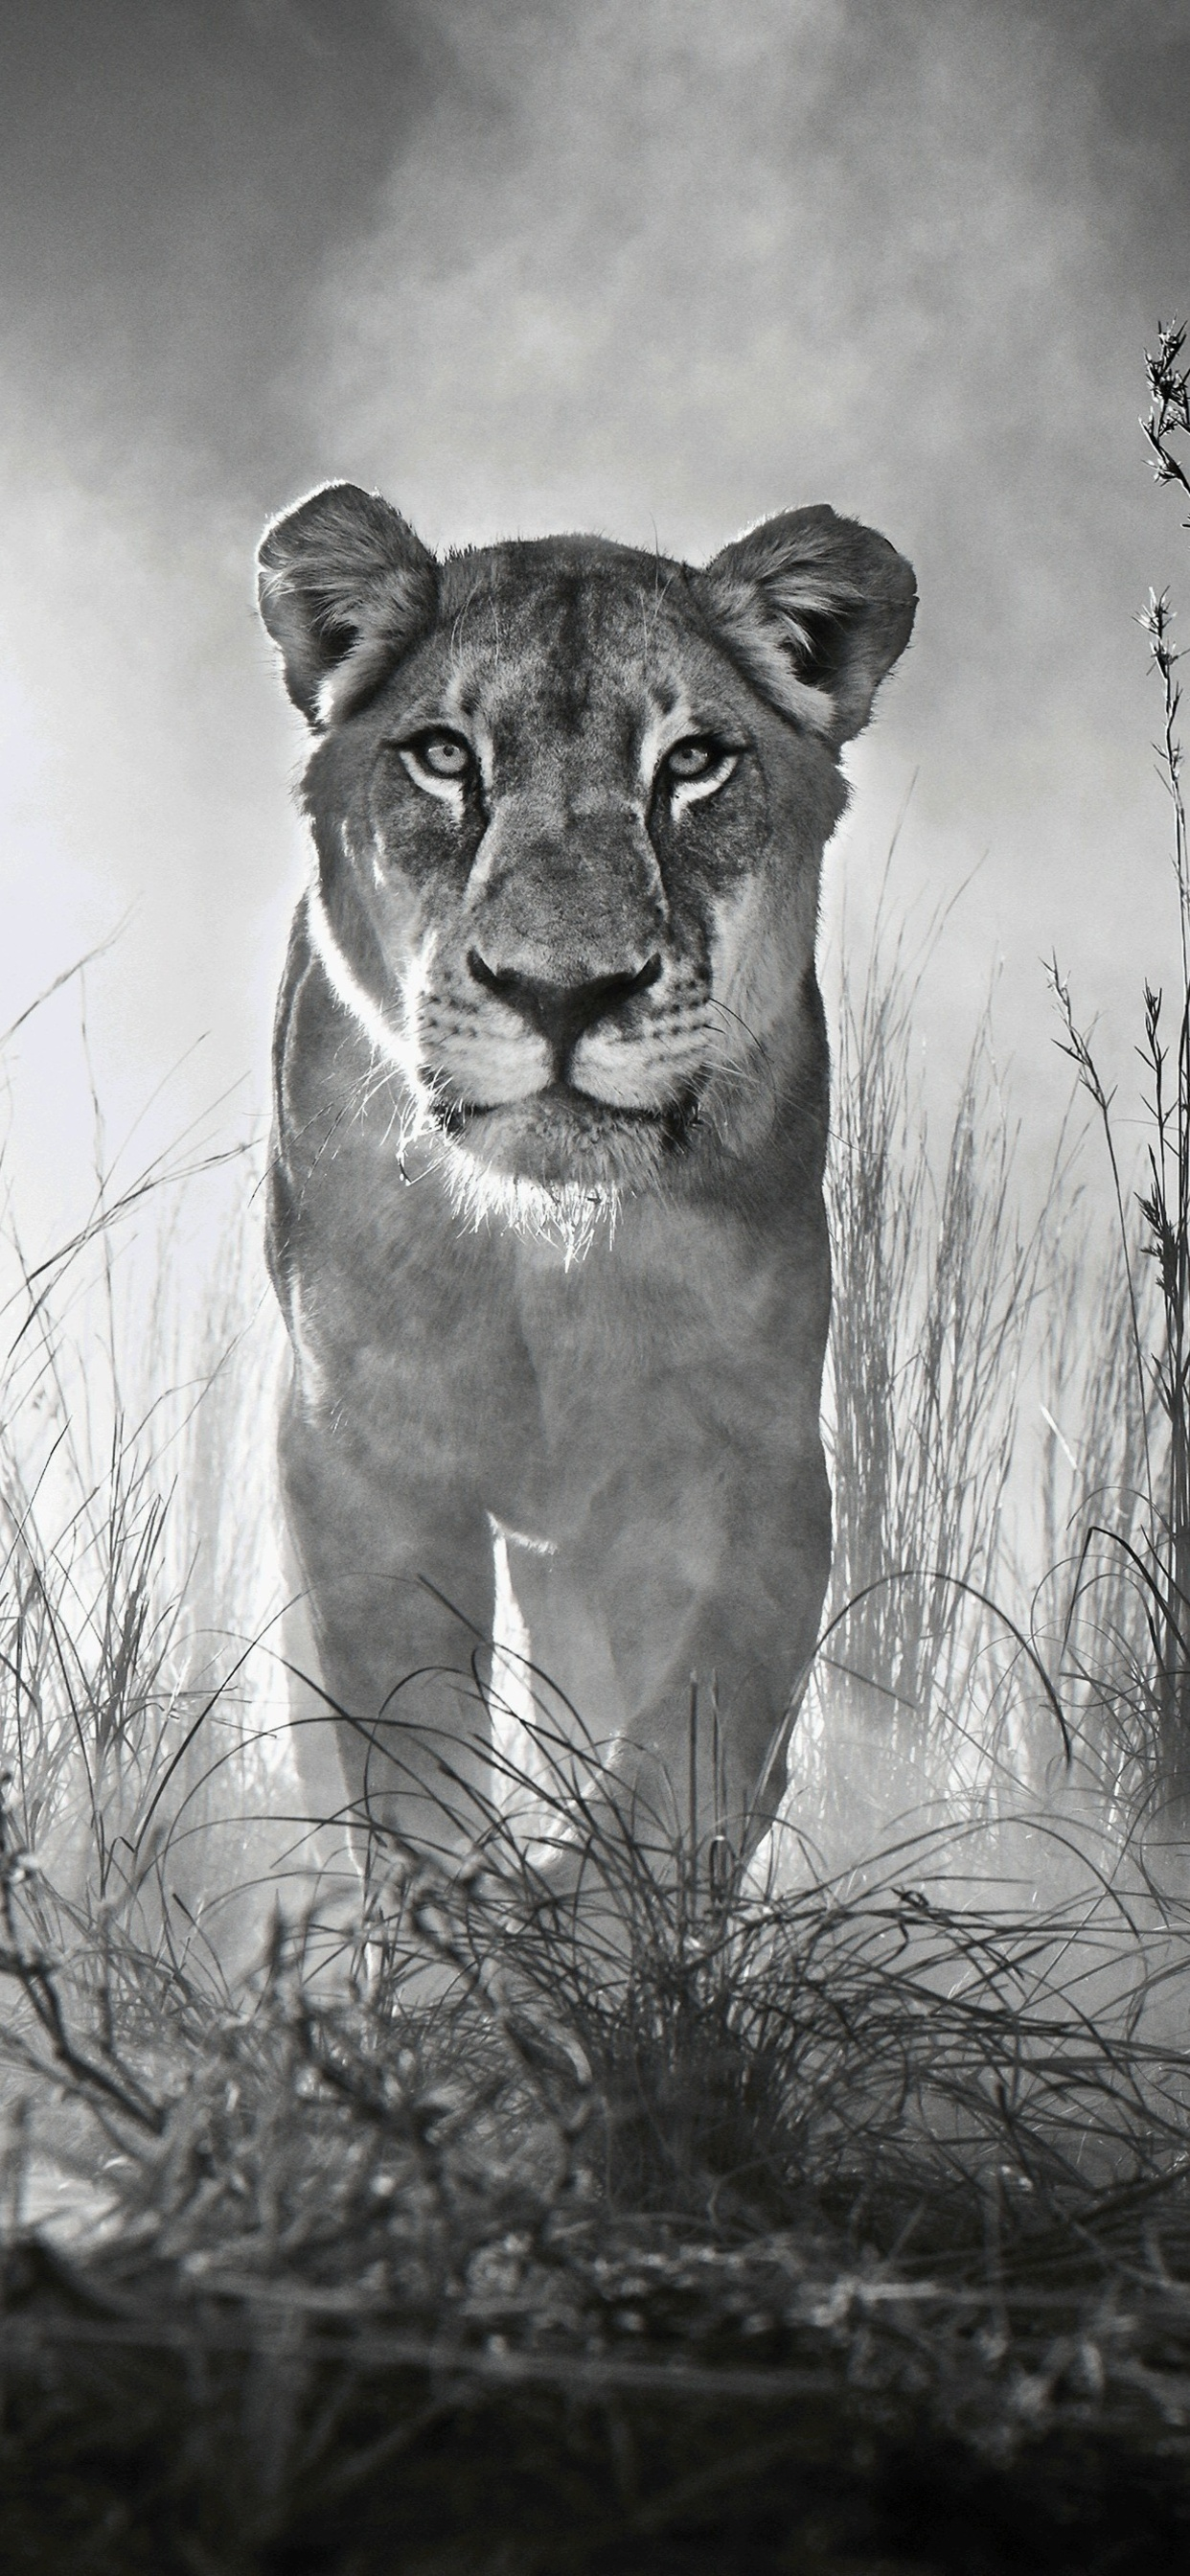 1242x2688 Lion 4k Black And White Iphone Xs Max Hd 4k